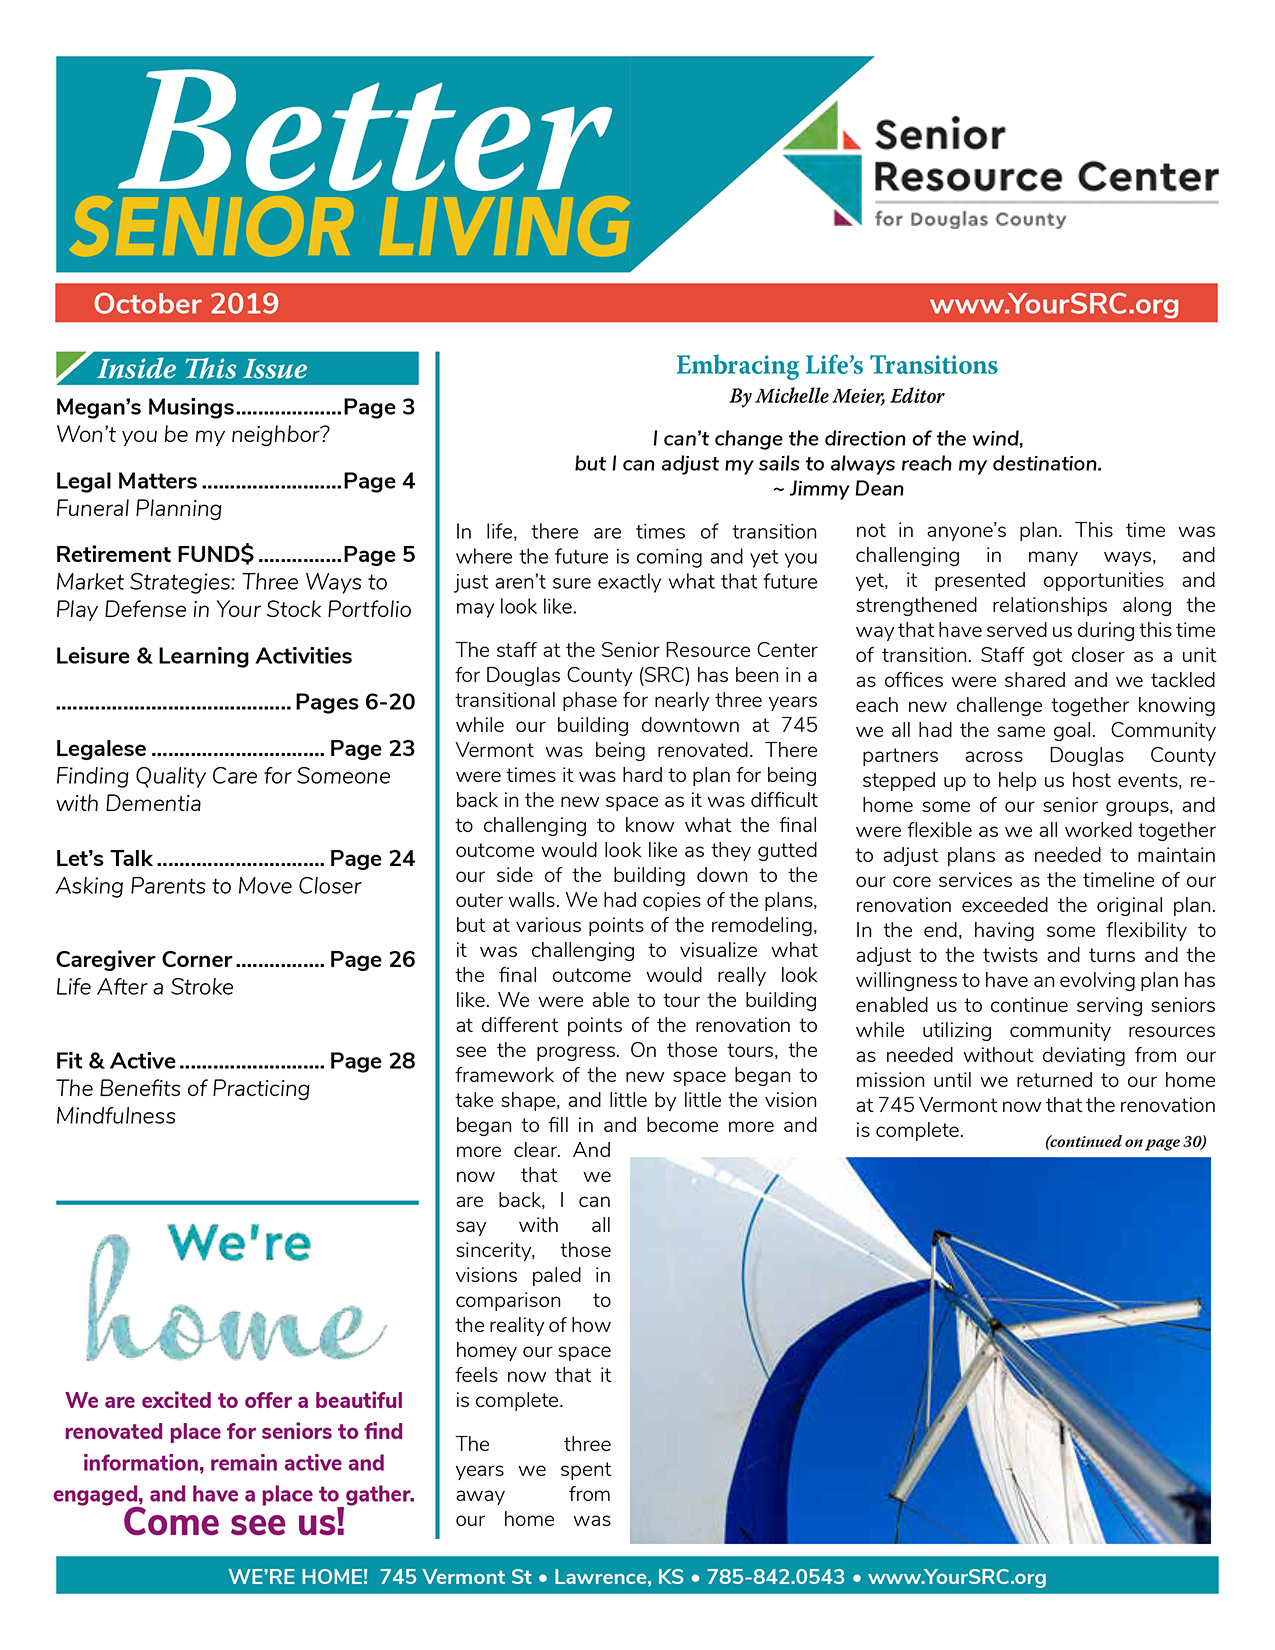 Better Senior Living October 2019 Issue